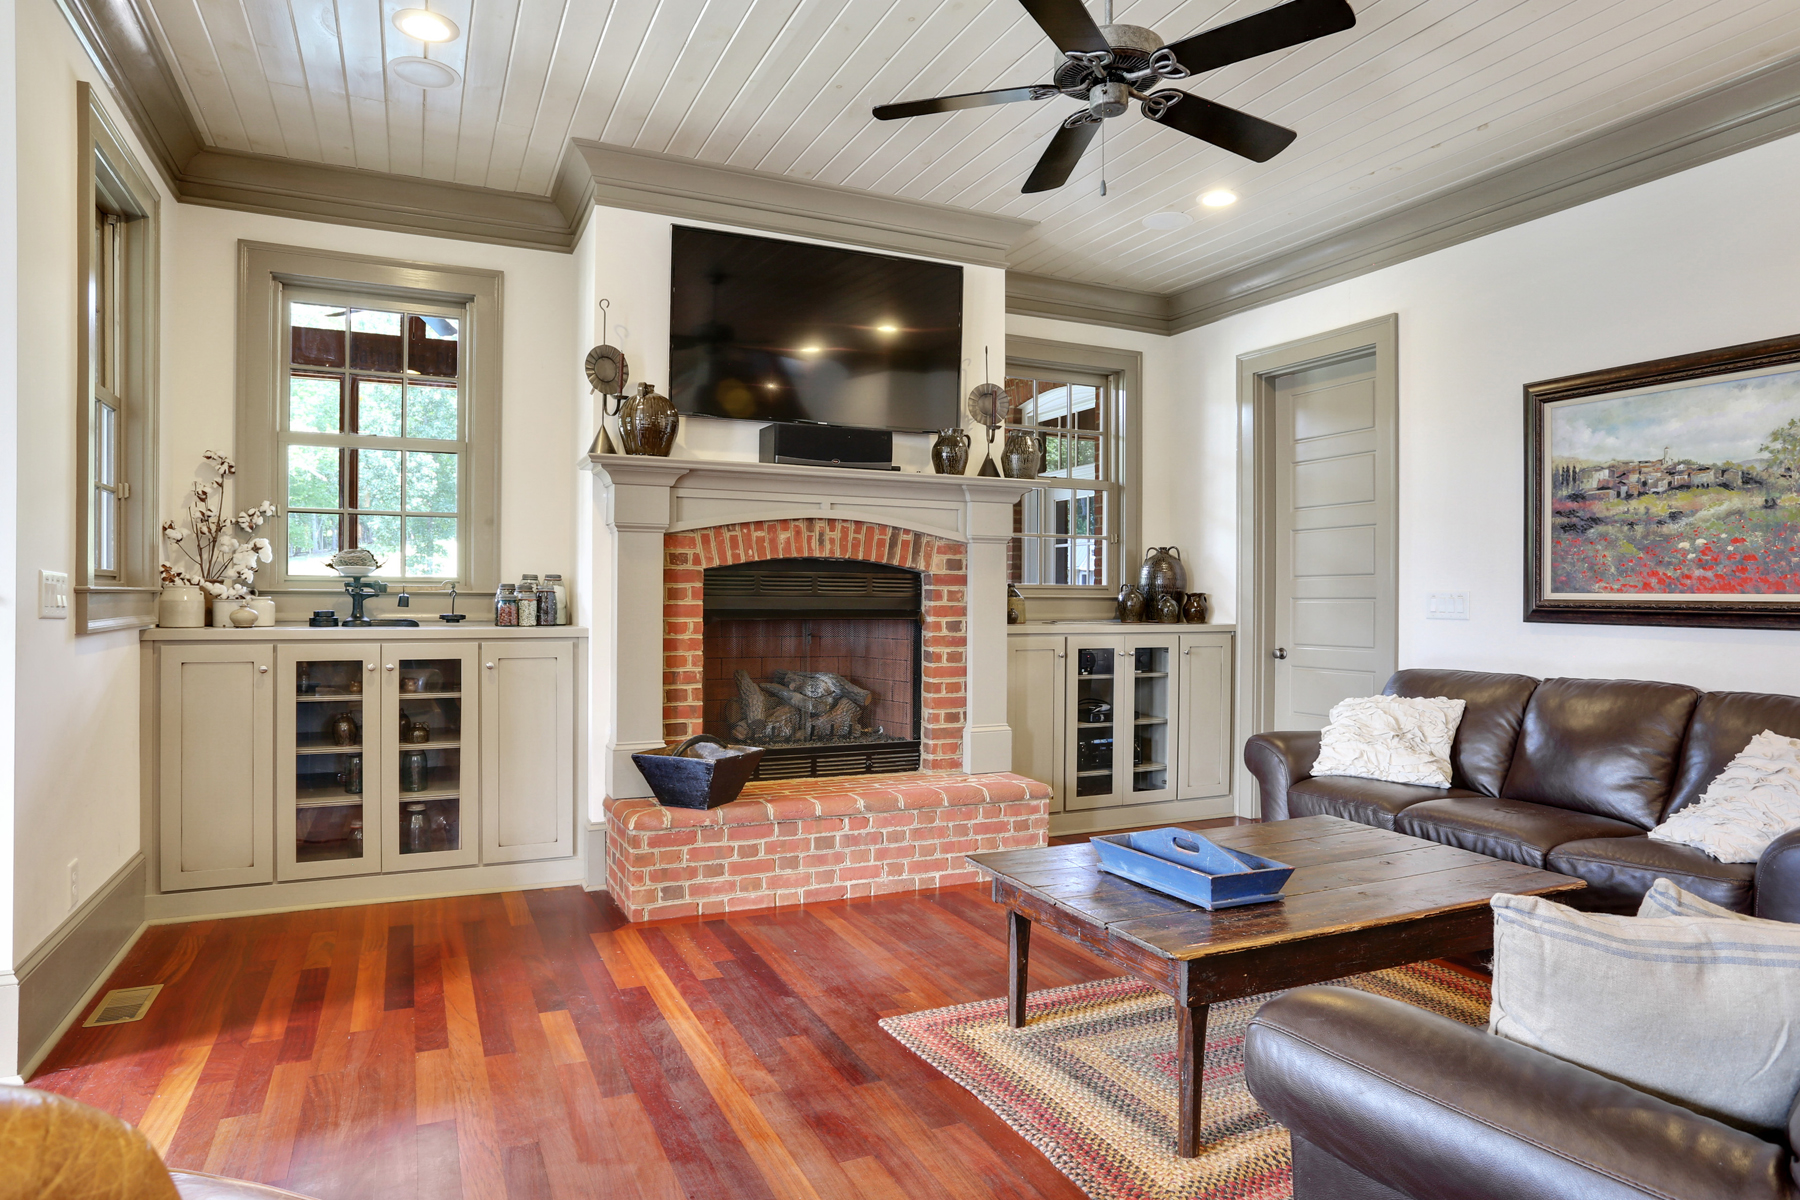 Additional photo for property listing at Timeless Home On Private Acreage 2229 Long Road Ball Ground, Georgia 30107 United States